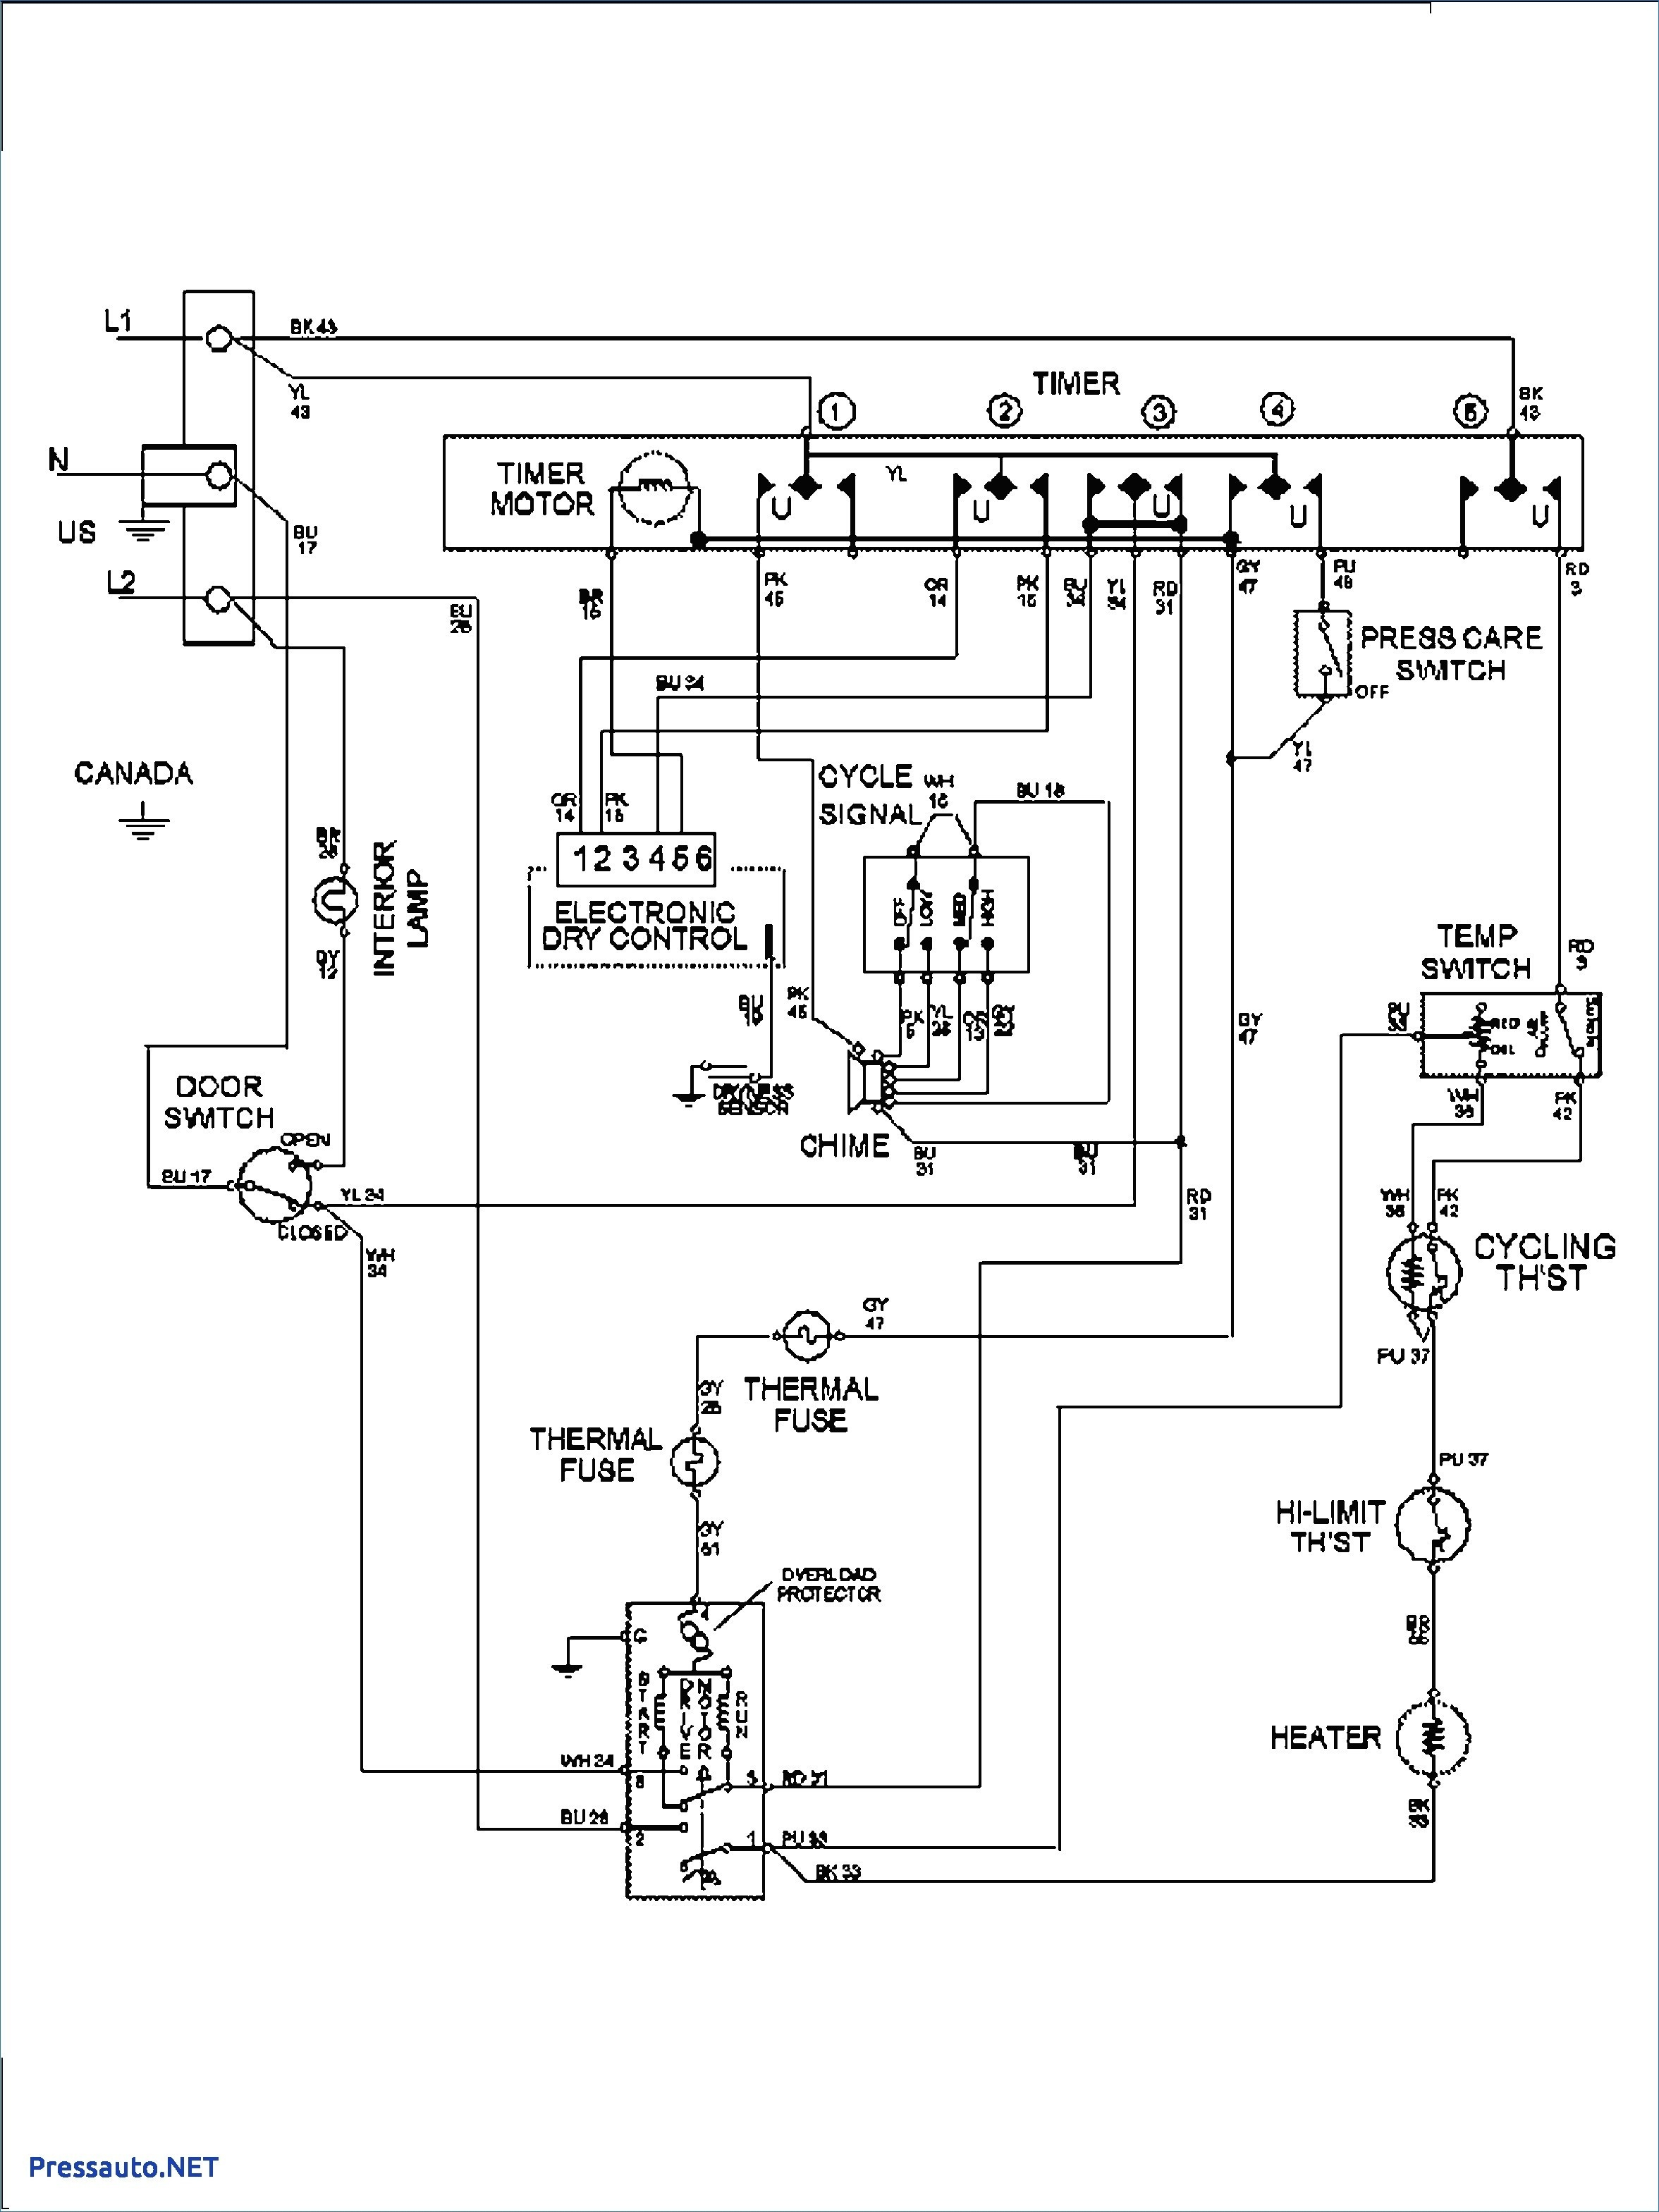 maytag dryer wiring diagram Download-Maytag Dryer Wiring Diagram 4 Prong New Beautiful Maytag Dryer Troubleshooting – Wiring Diagram Collection 4-n